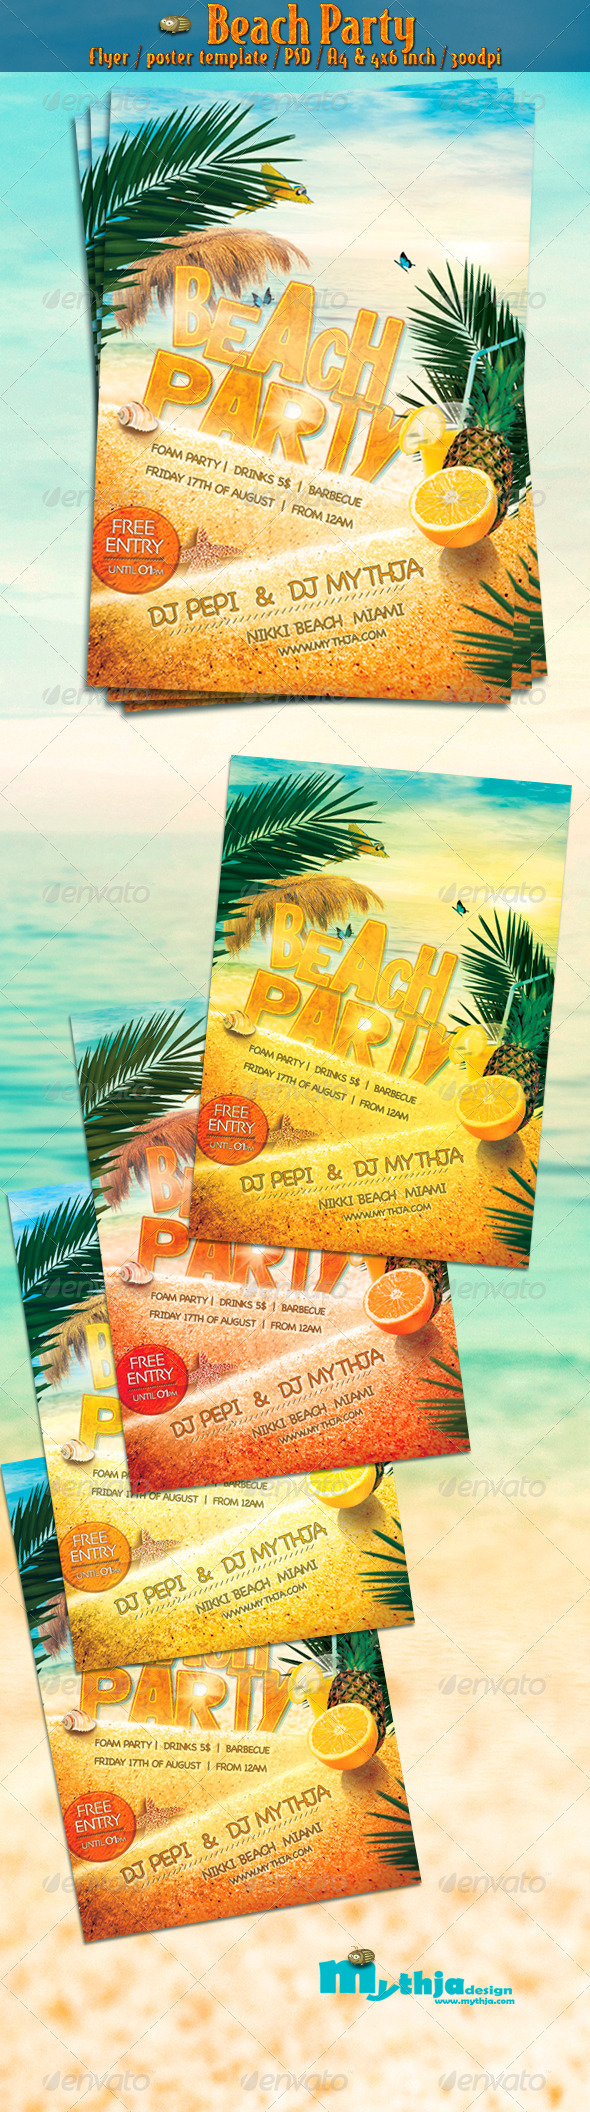 Beach Party Vol.1 - Flyer/Poster Template - Events Flyers